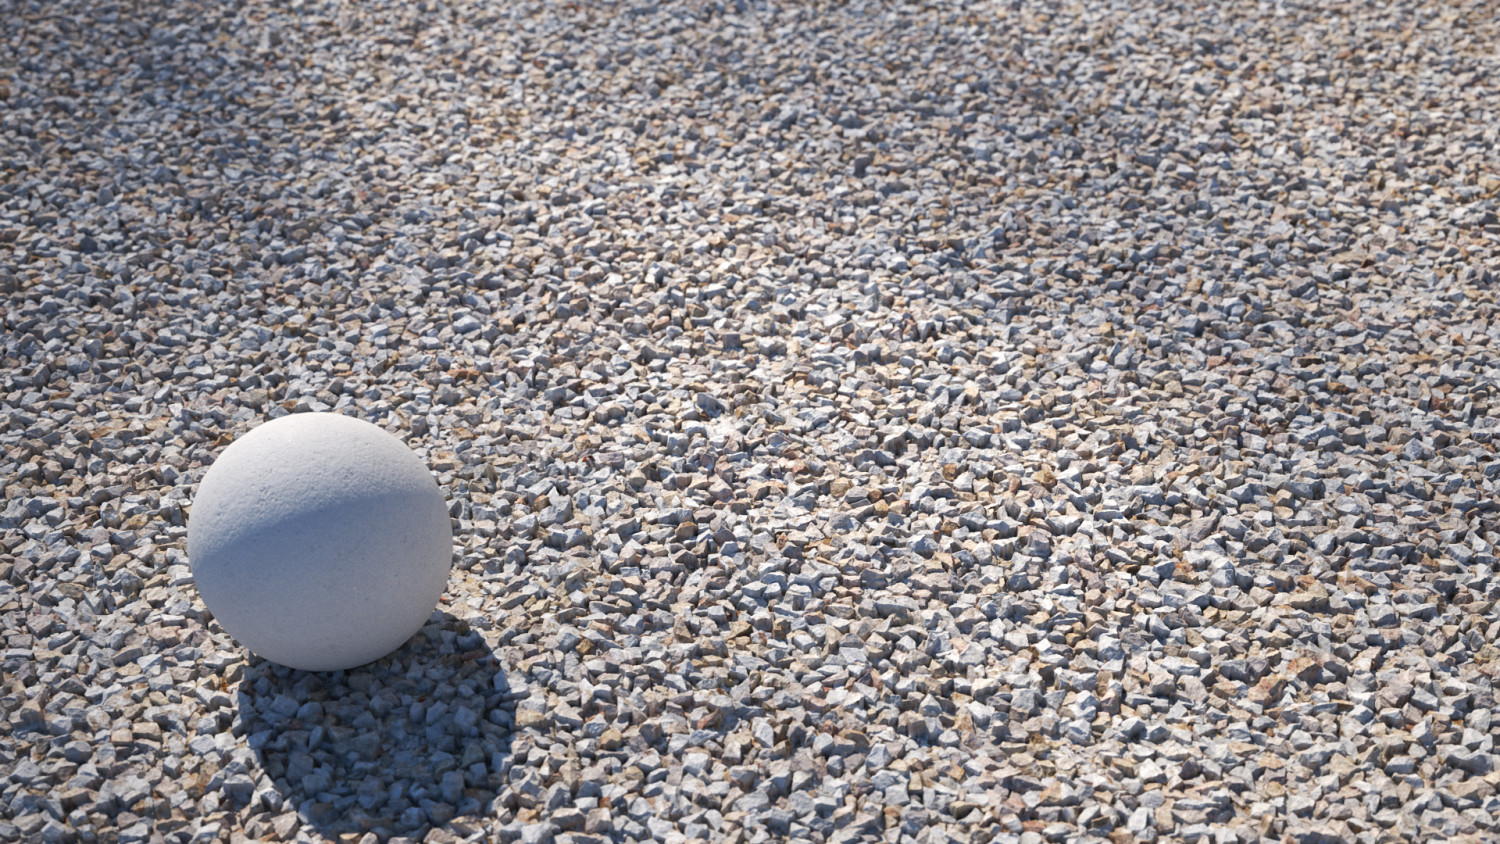 White granite gravel texture